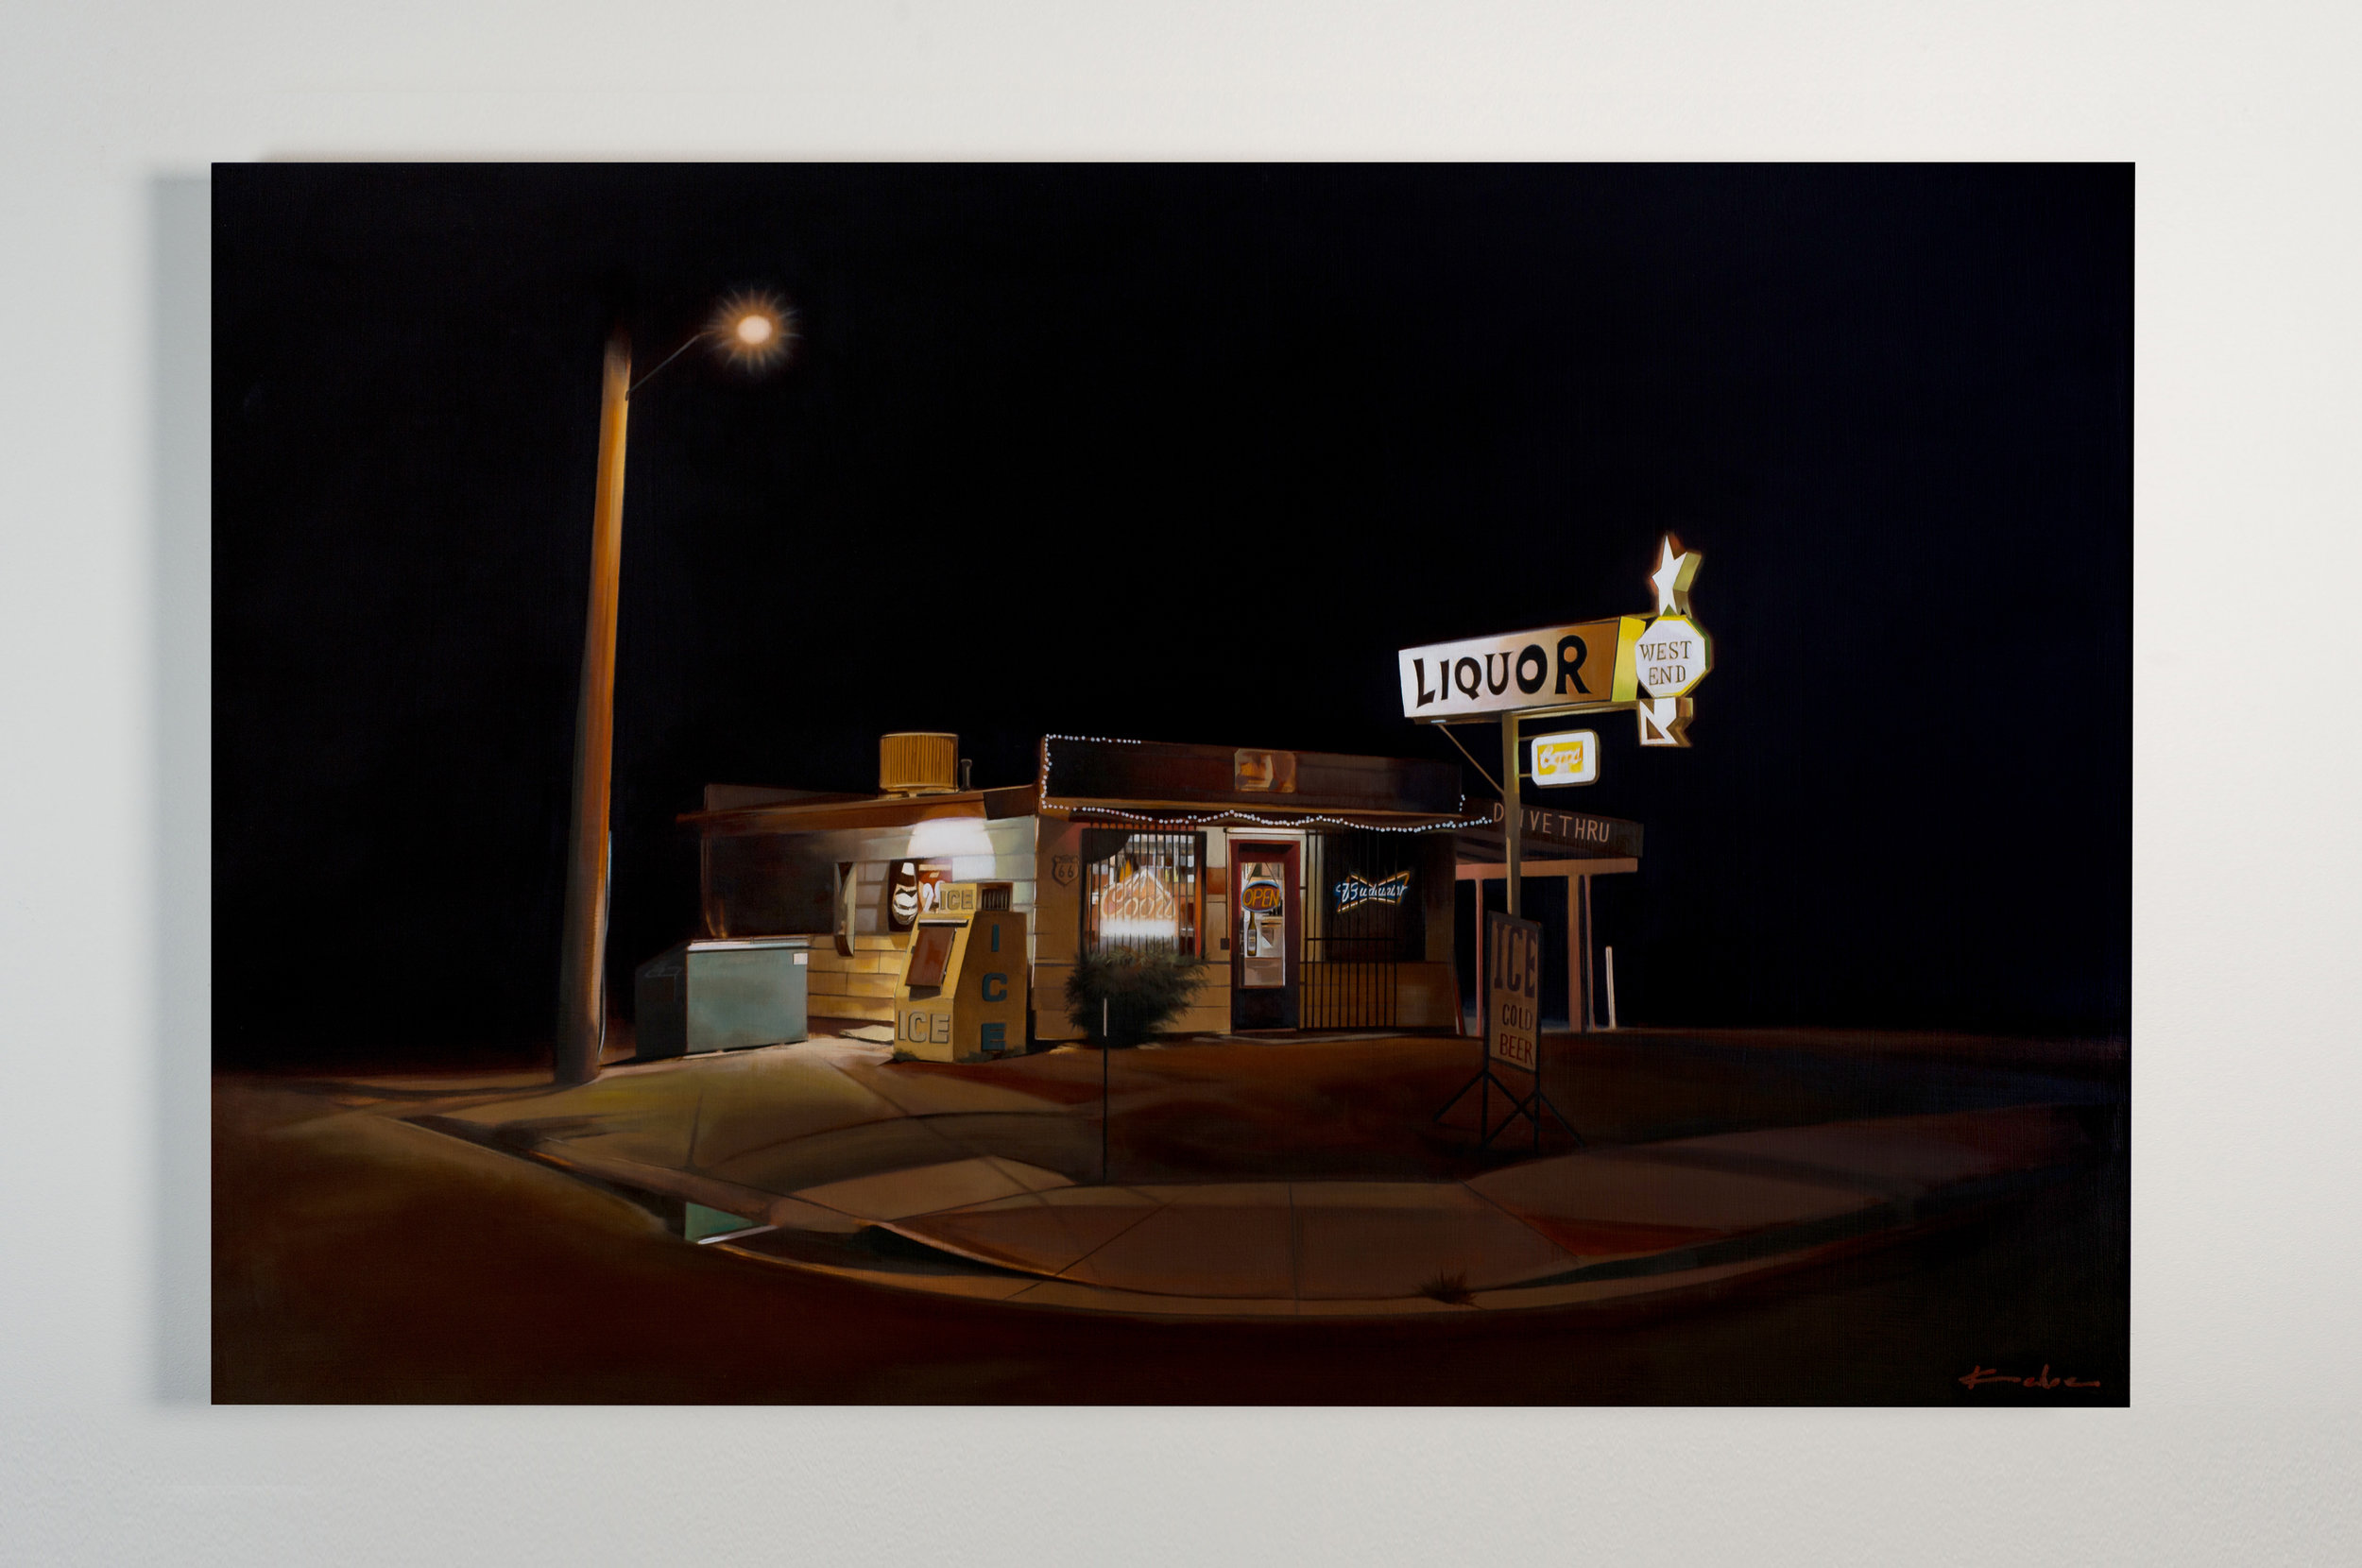 Title: WEST END  26 x 40, Oil on Board  SOLD